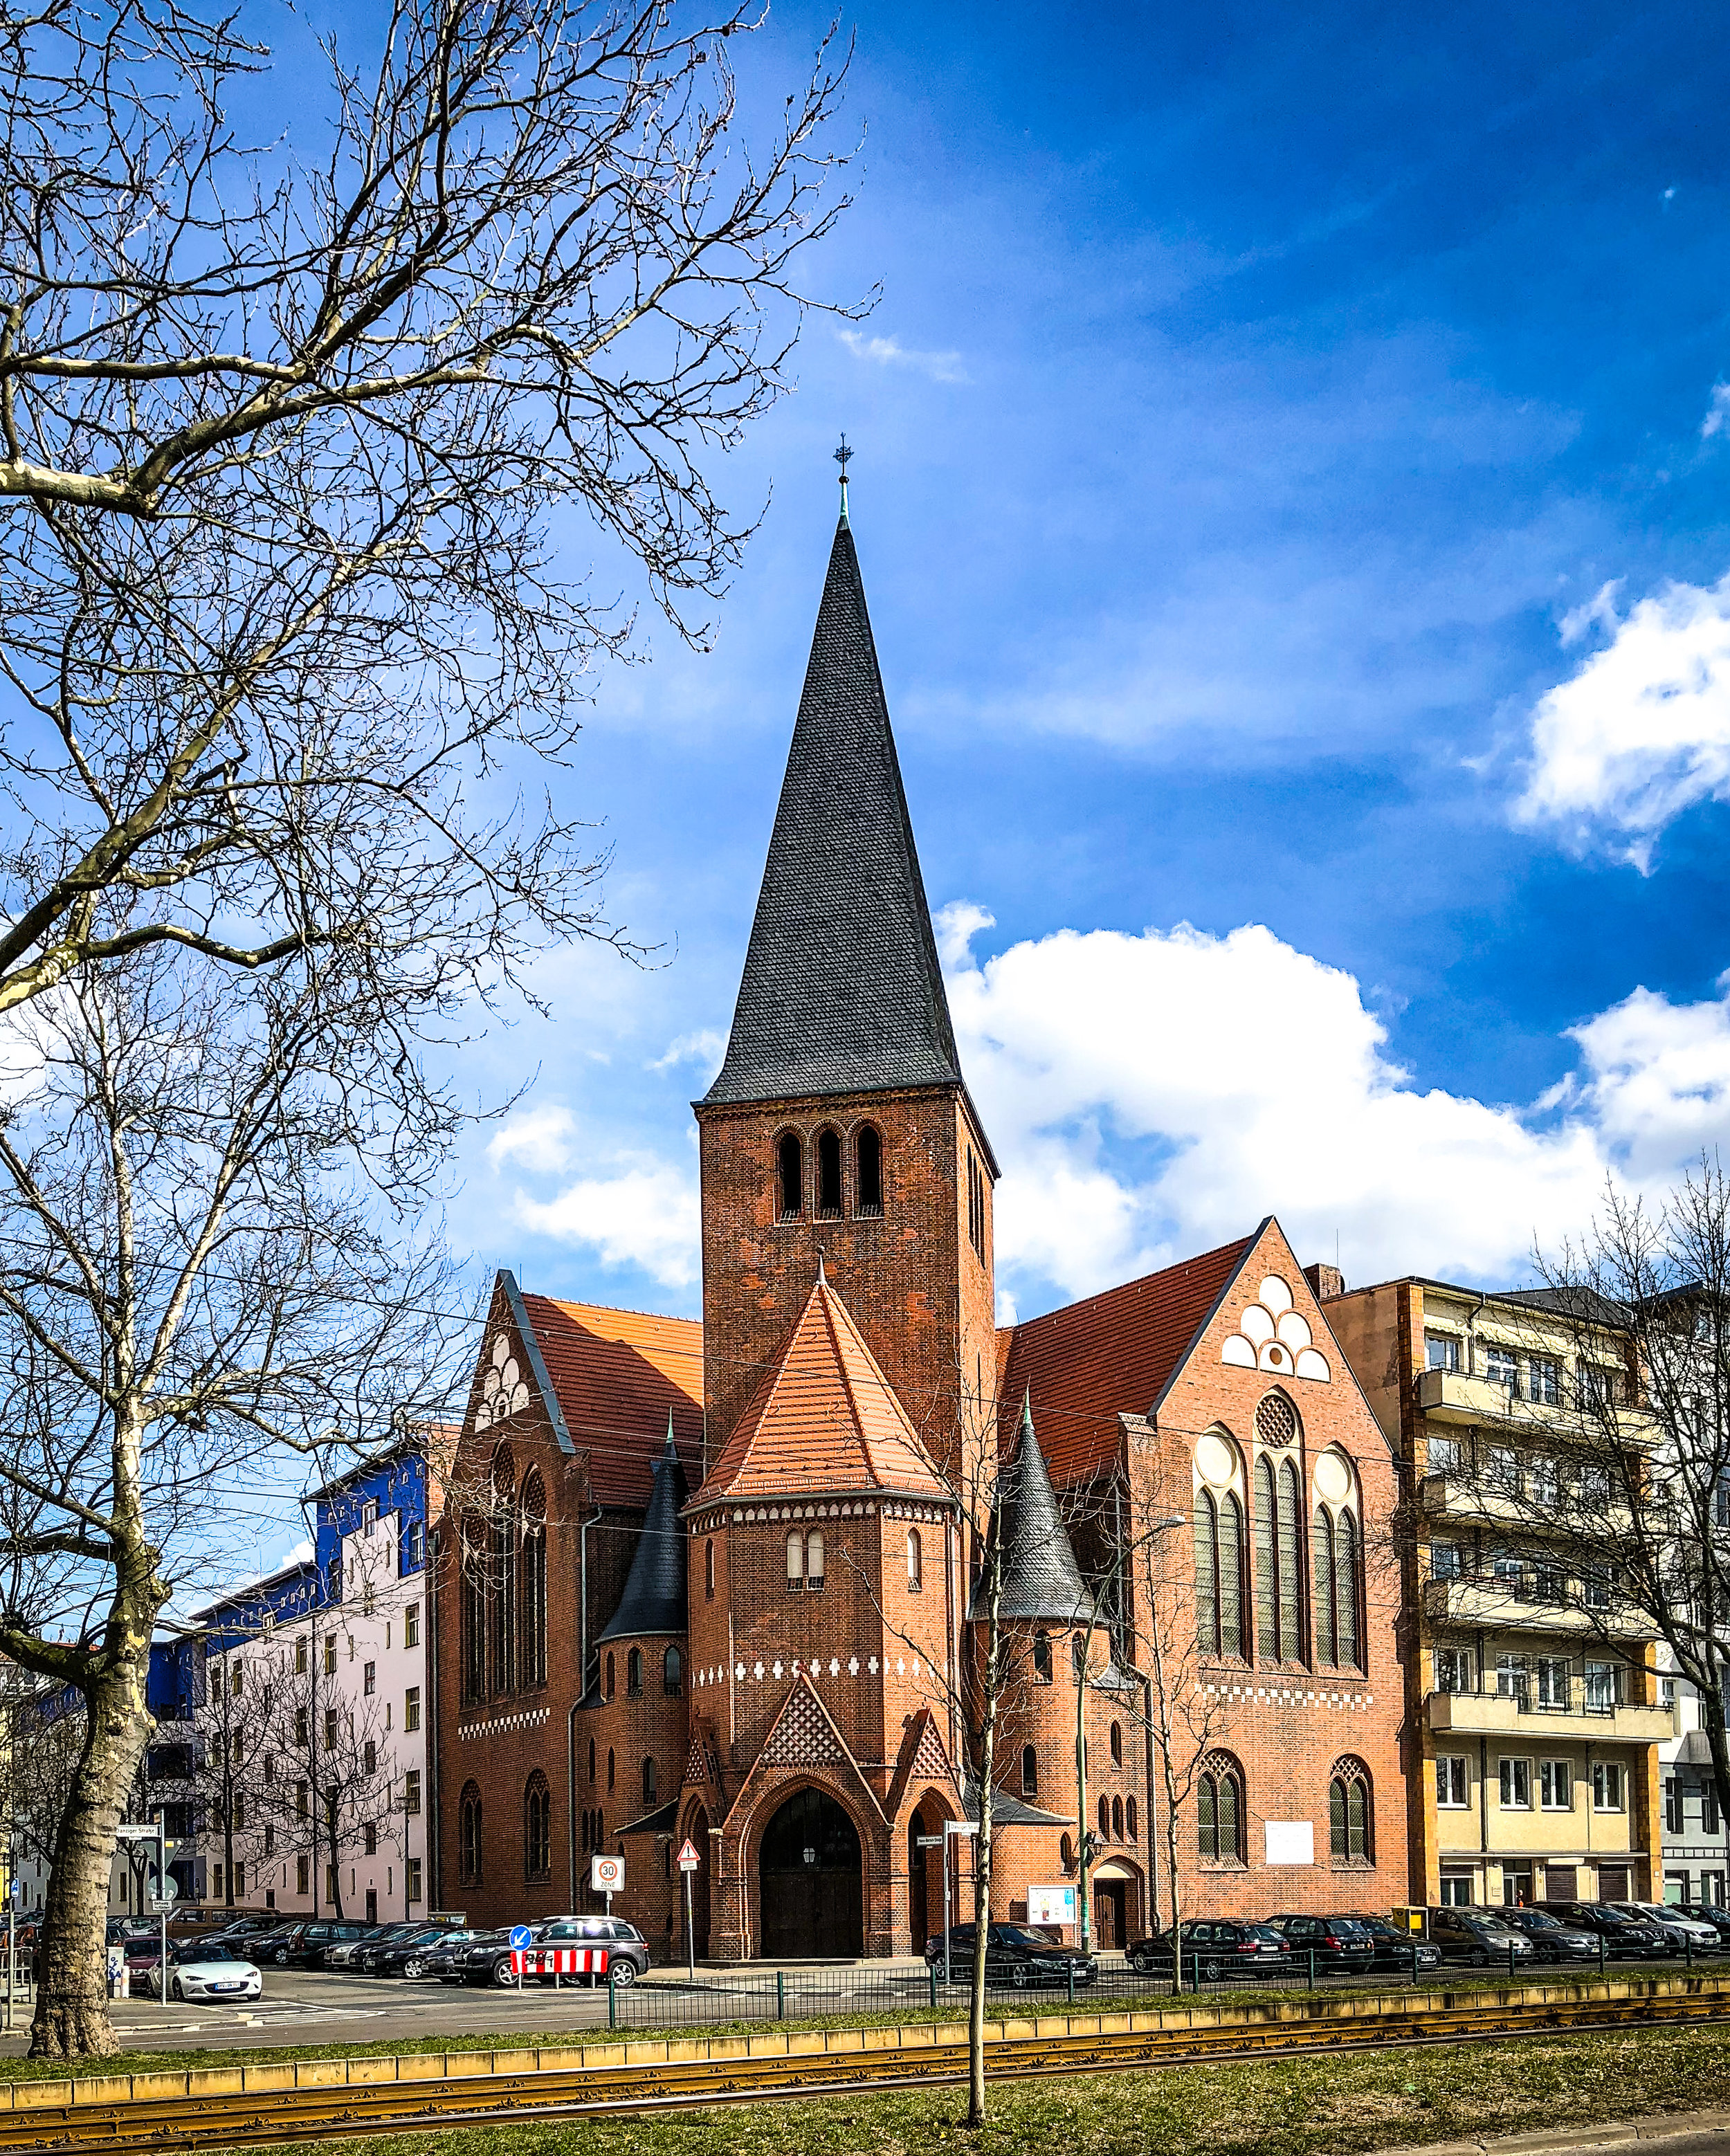 Church on Denziger straße